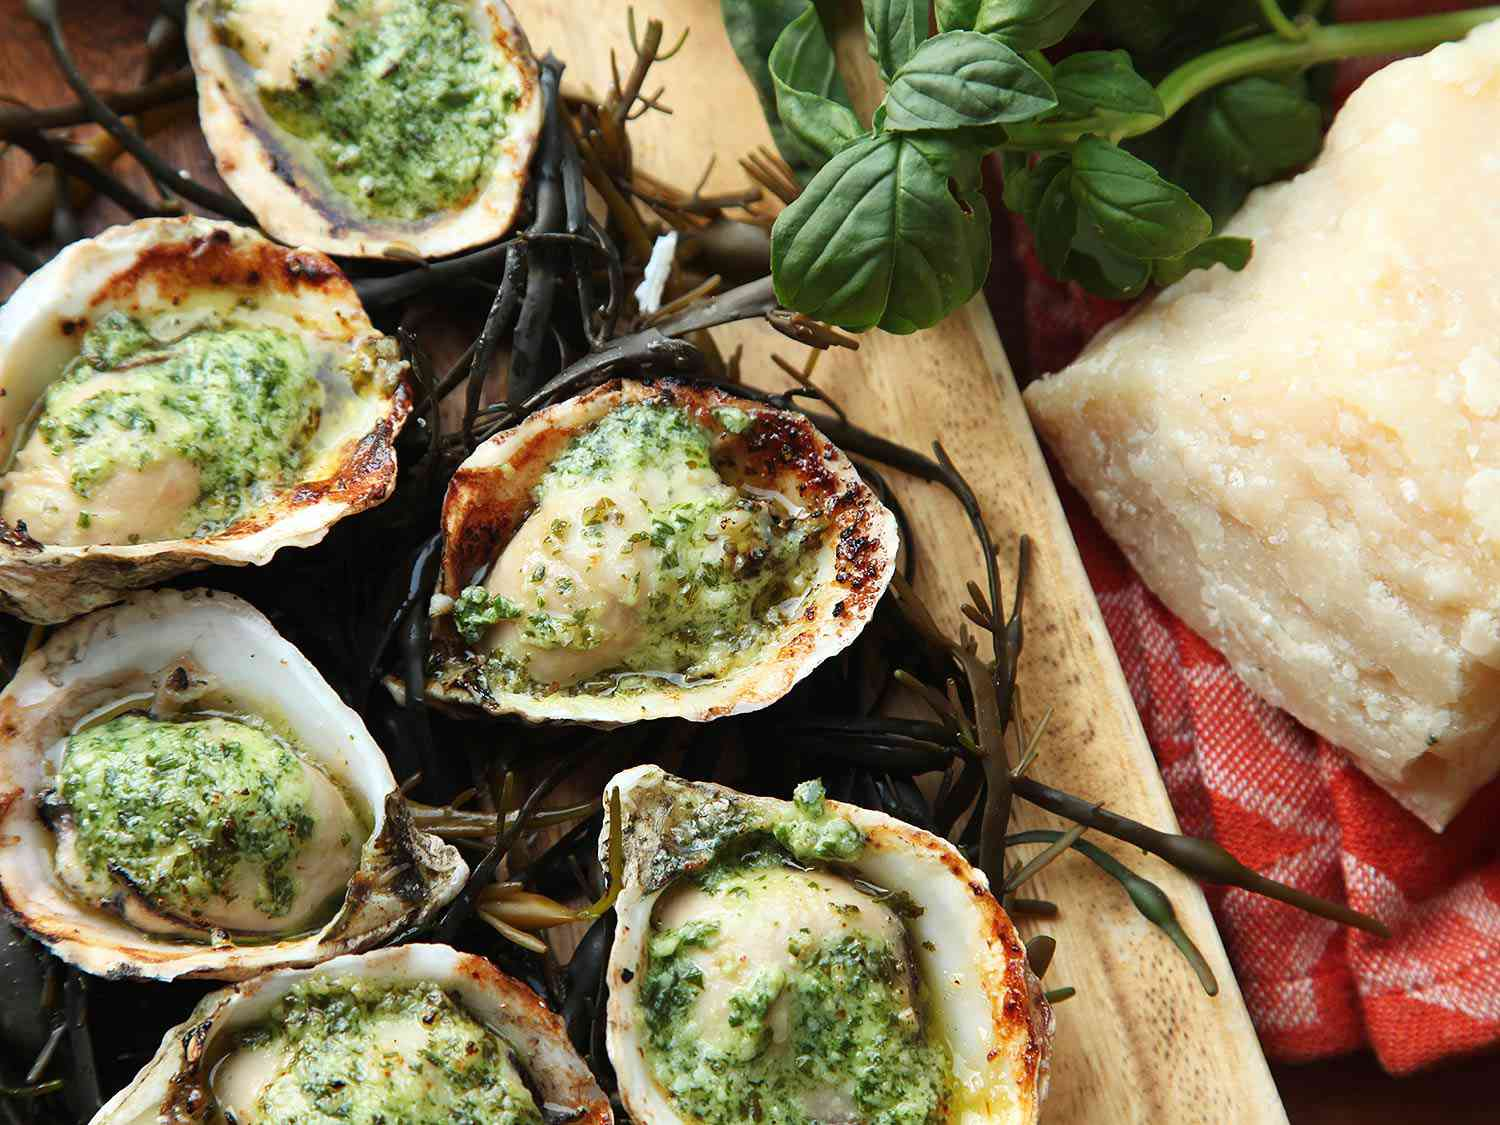 20160801-grilled-oysters-22.jpg